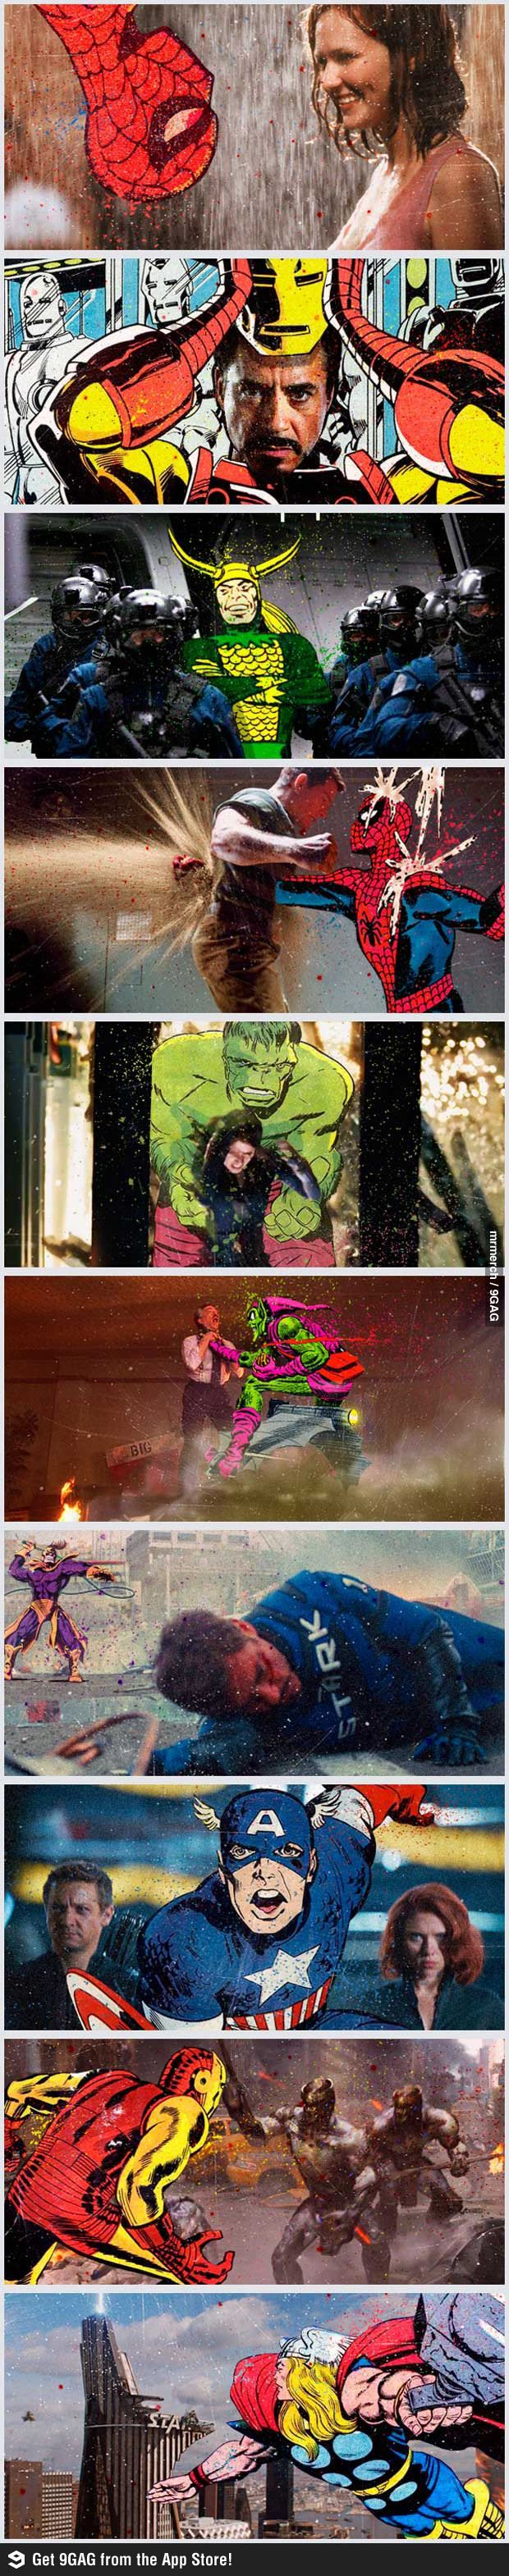 Crossover between movies and its comics